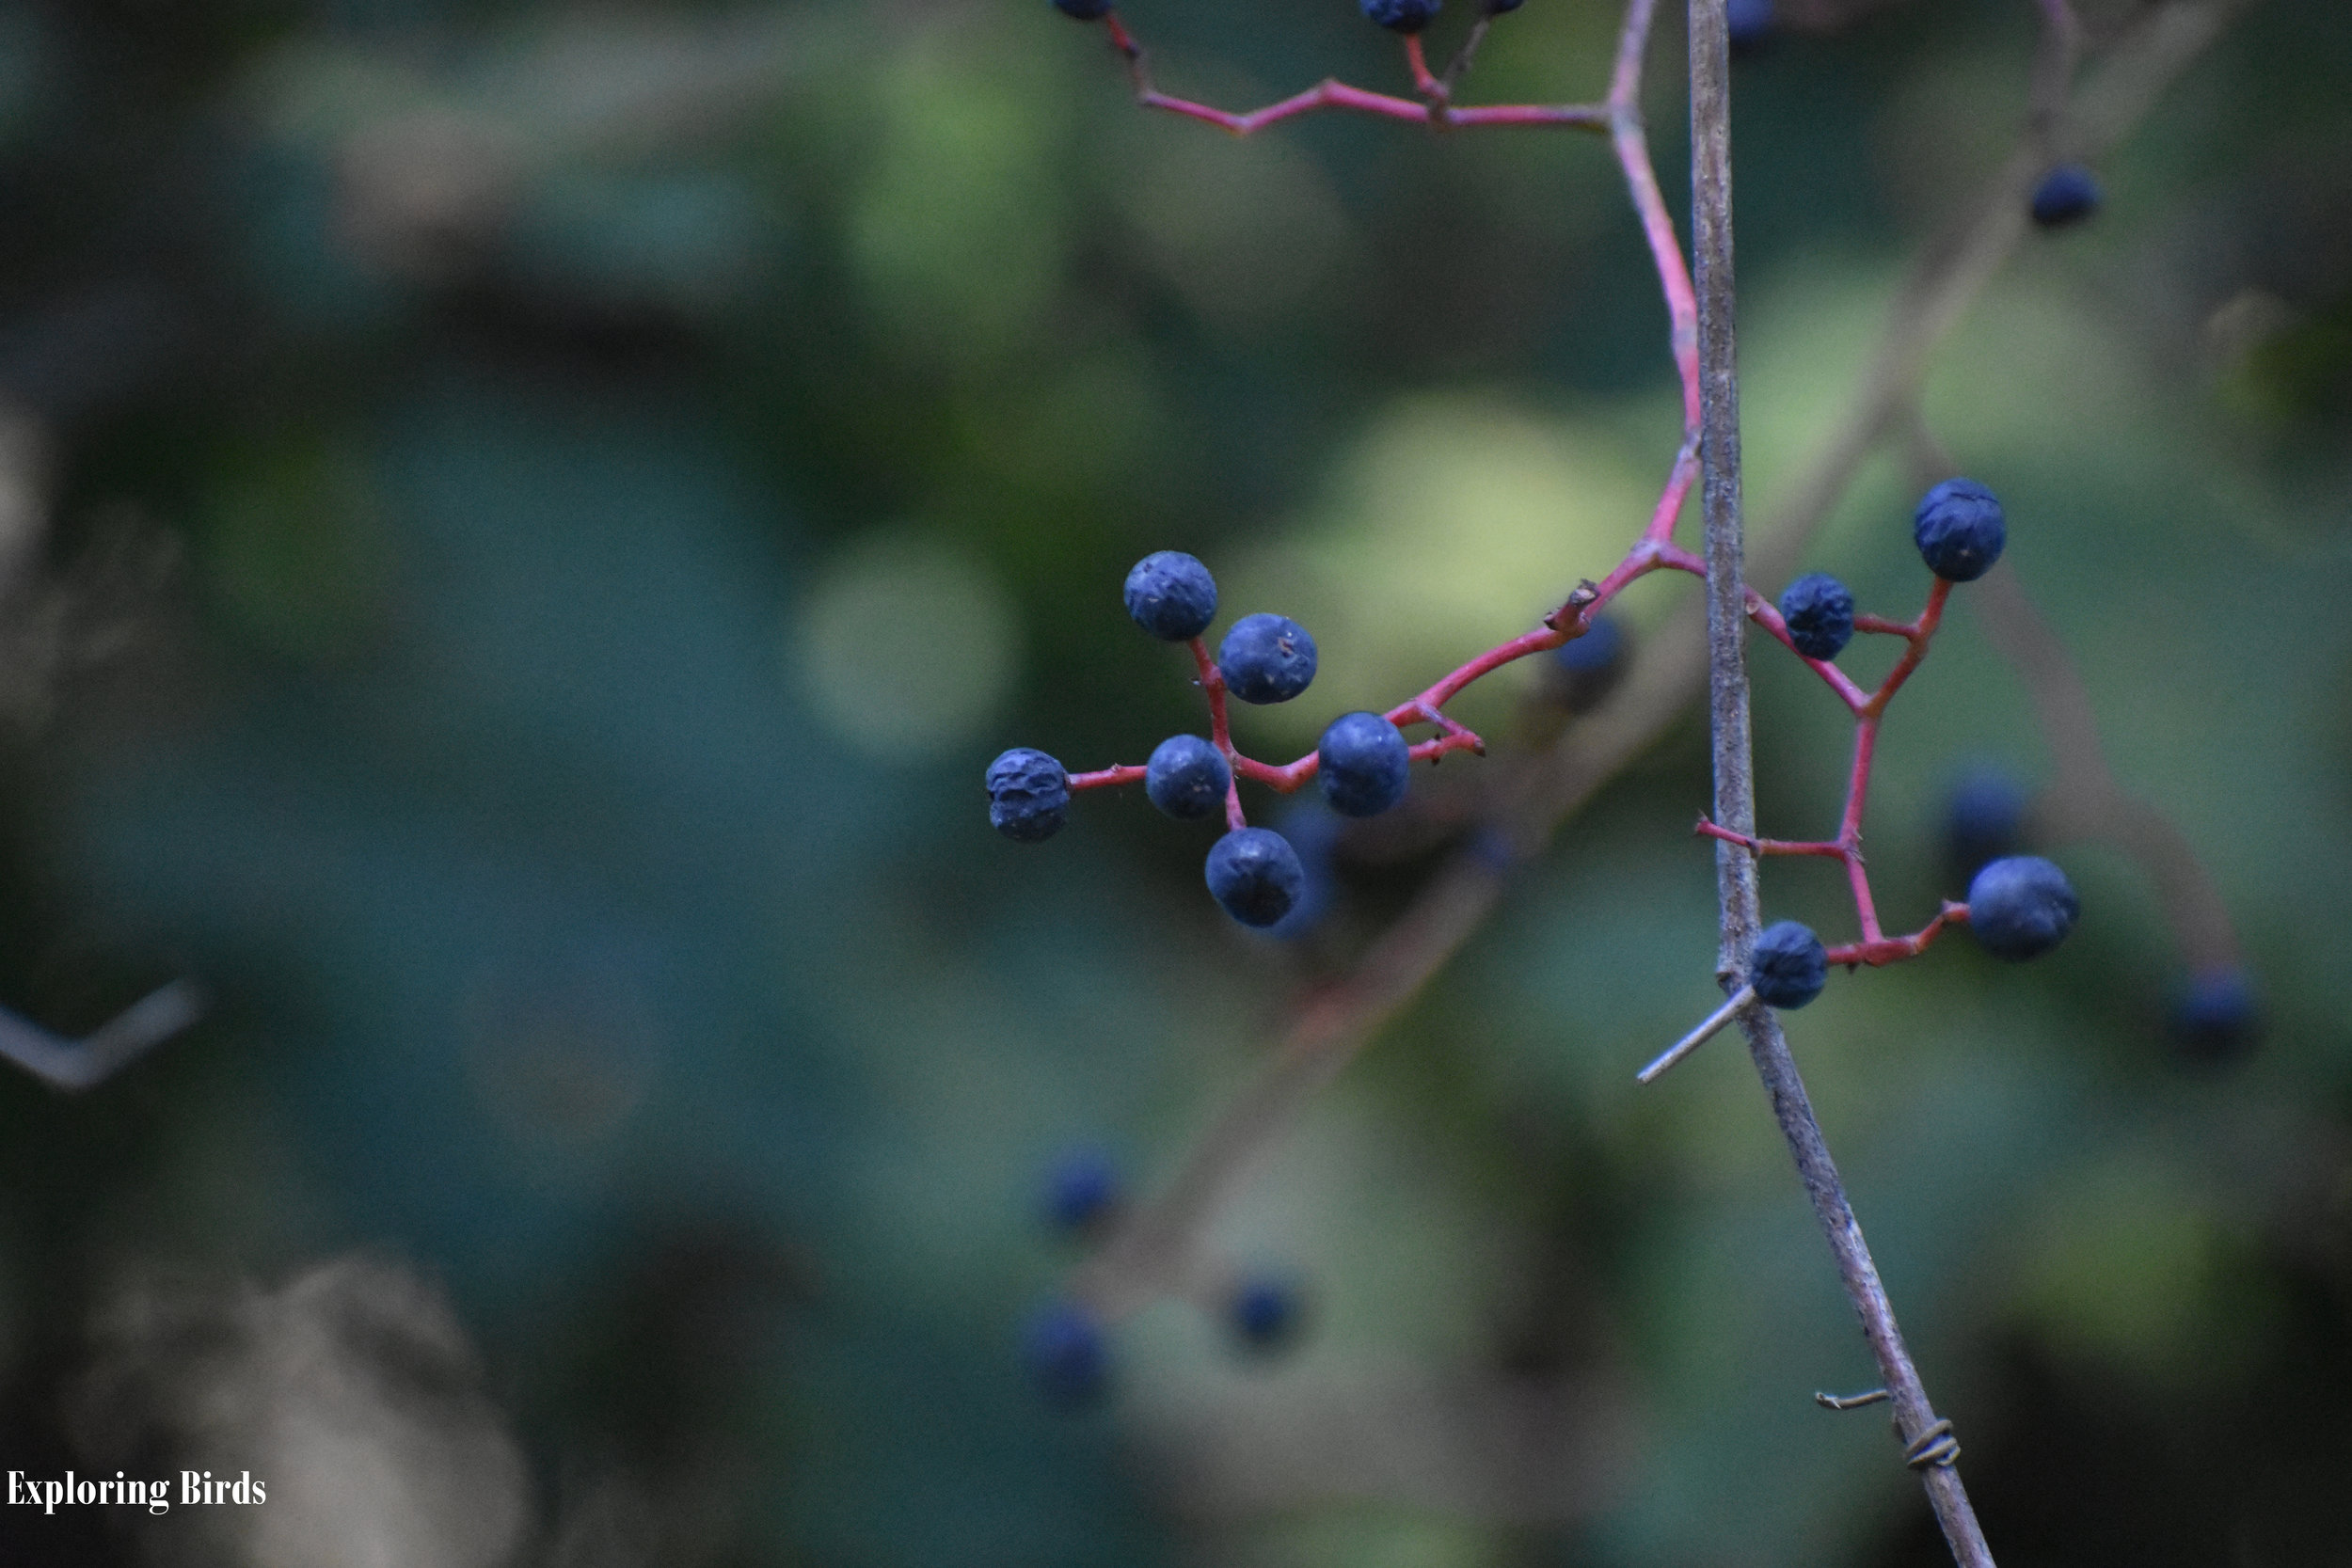 Virginia Creeper berries are eaten by Pileated Woodpecker